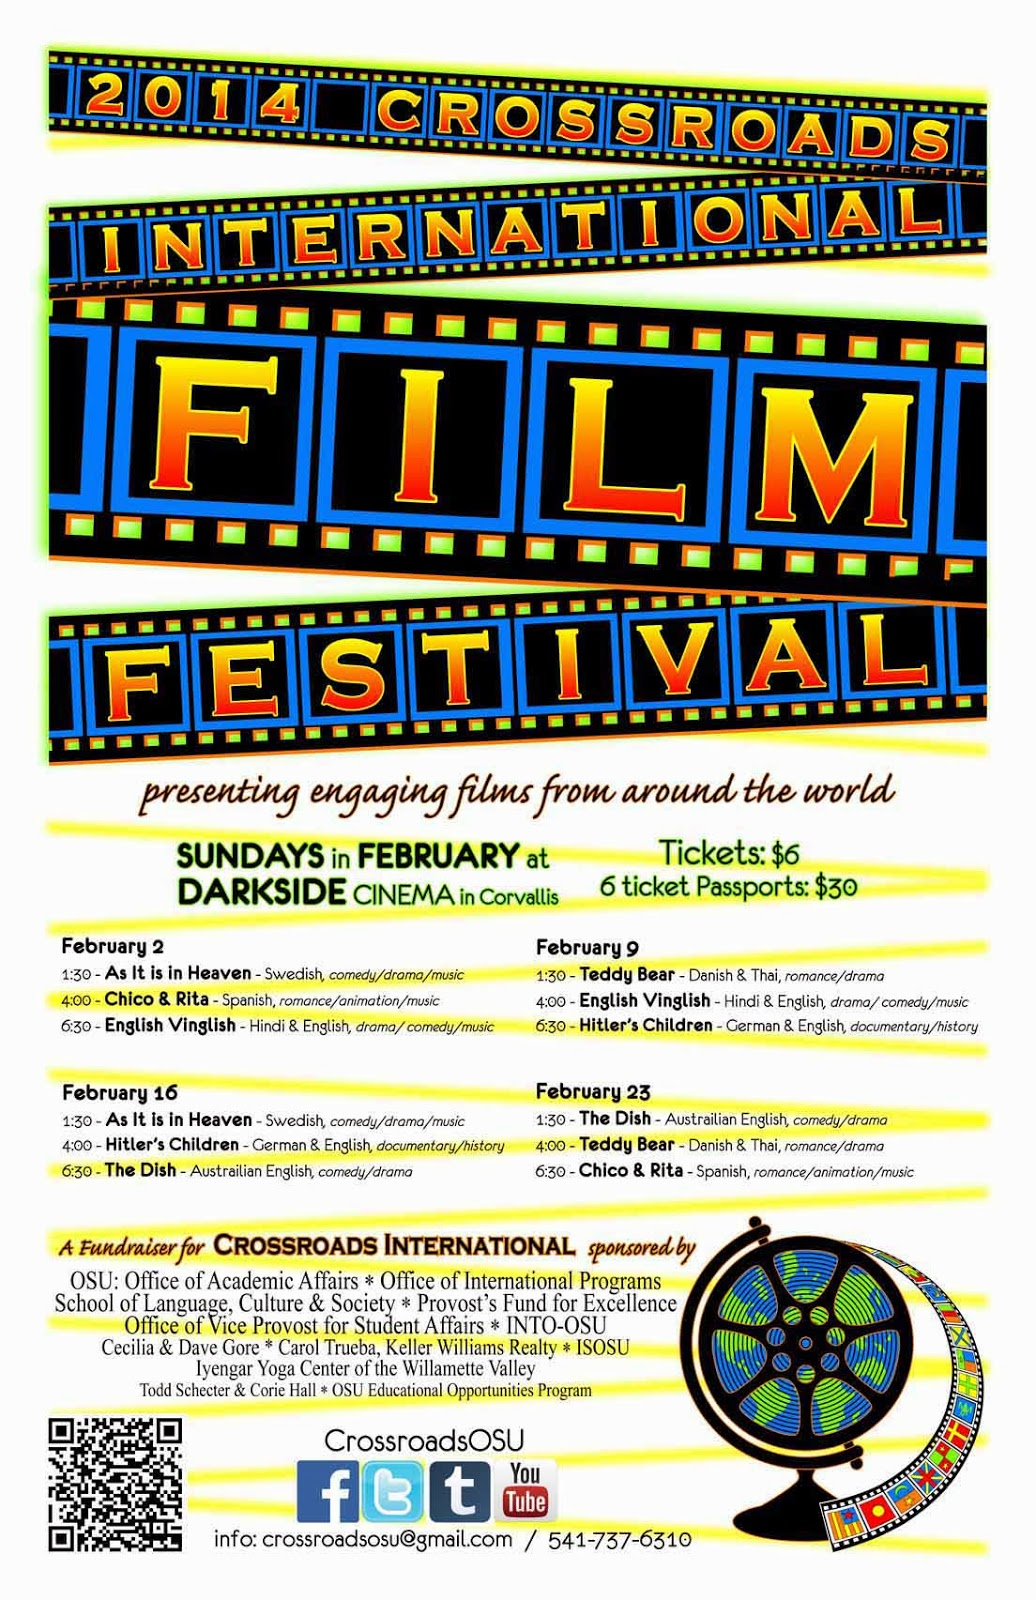 presenting engaging films from around the world Sundays in February 2014 at the Darkside Cinema in Corvallis, Oregon.